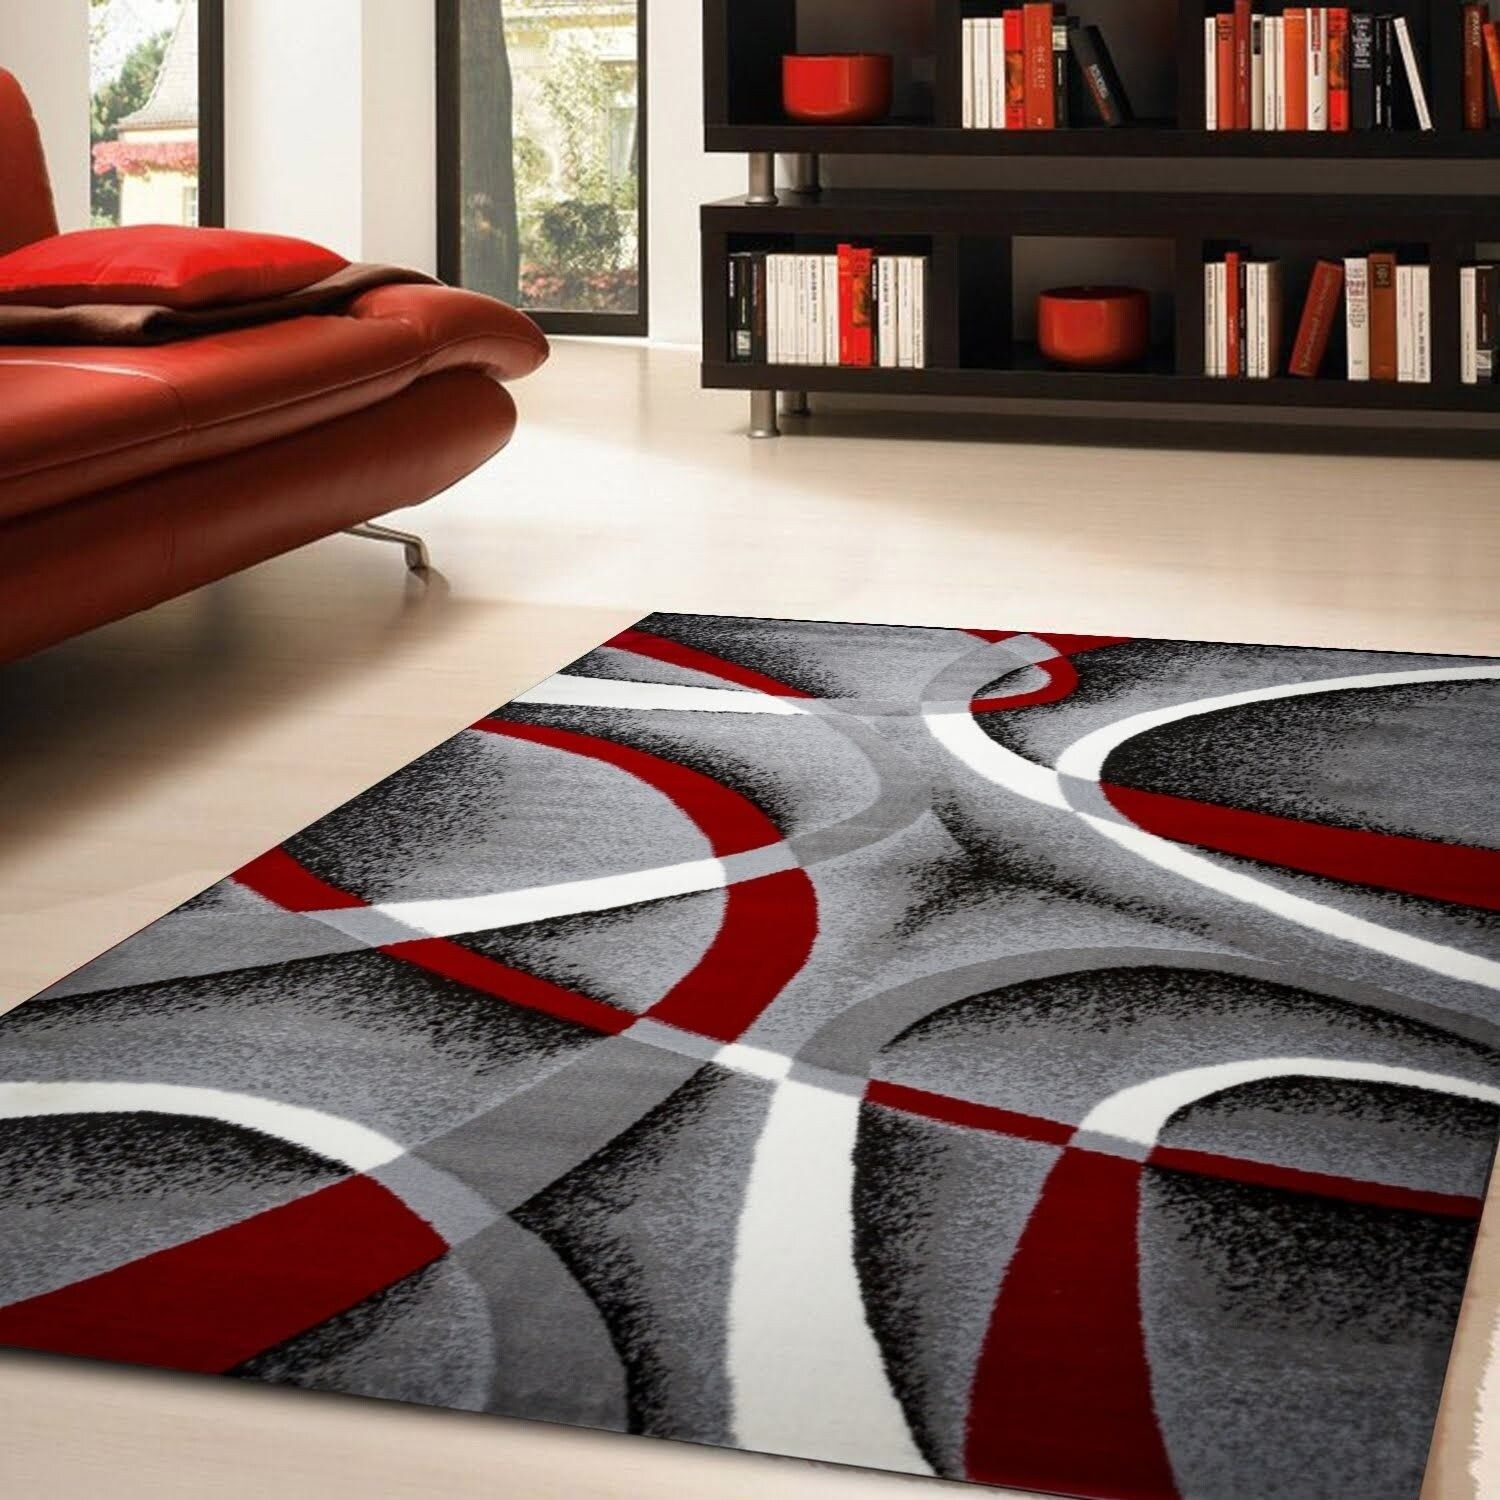 Online Shopping Bedding Furniture Electronics Jewelry Clothing More Living Room Red Living Room Grey Grey Red Living Room